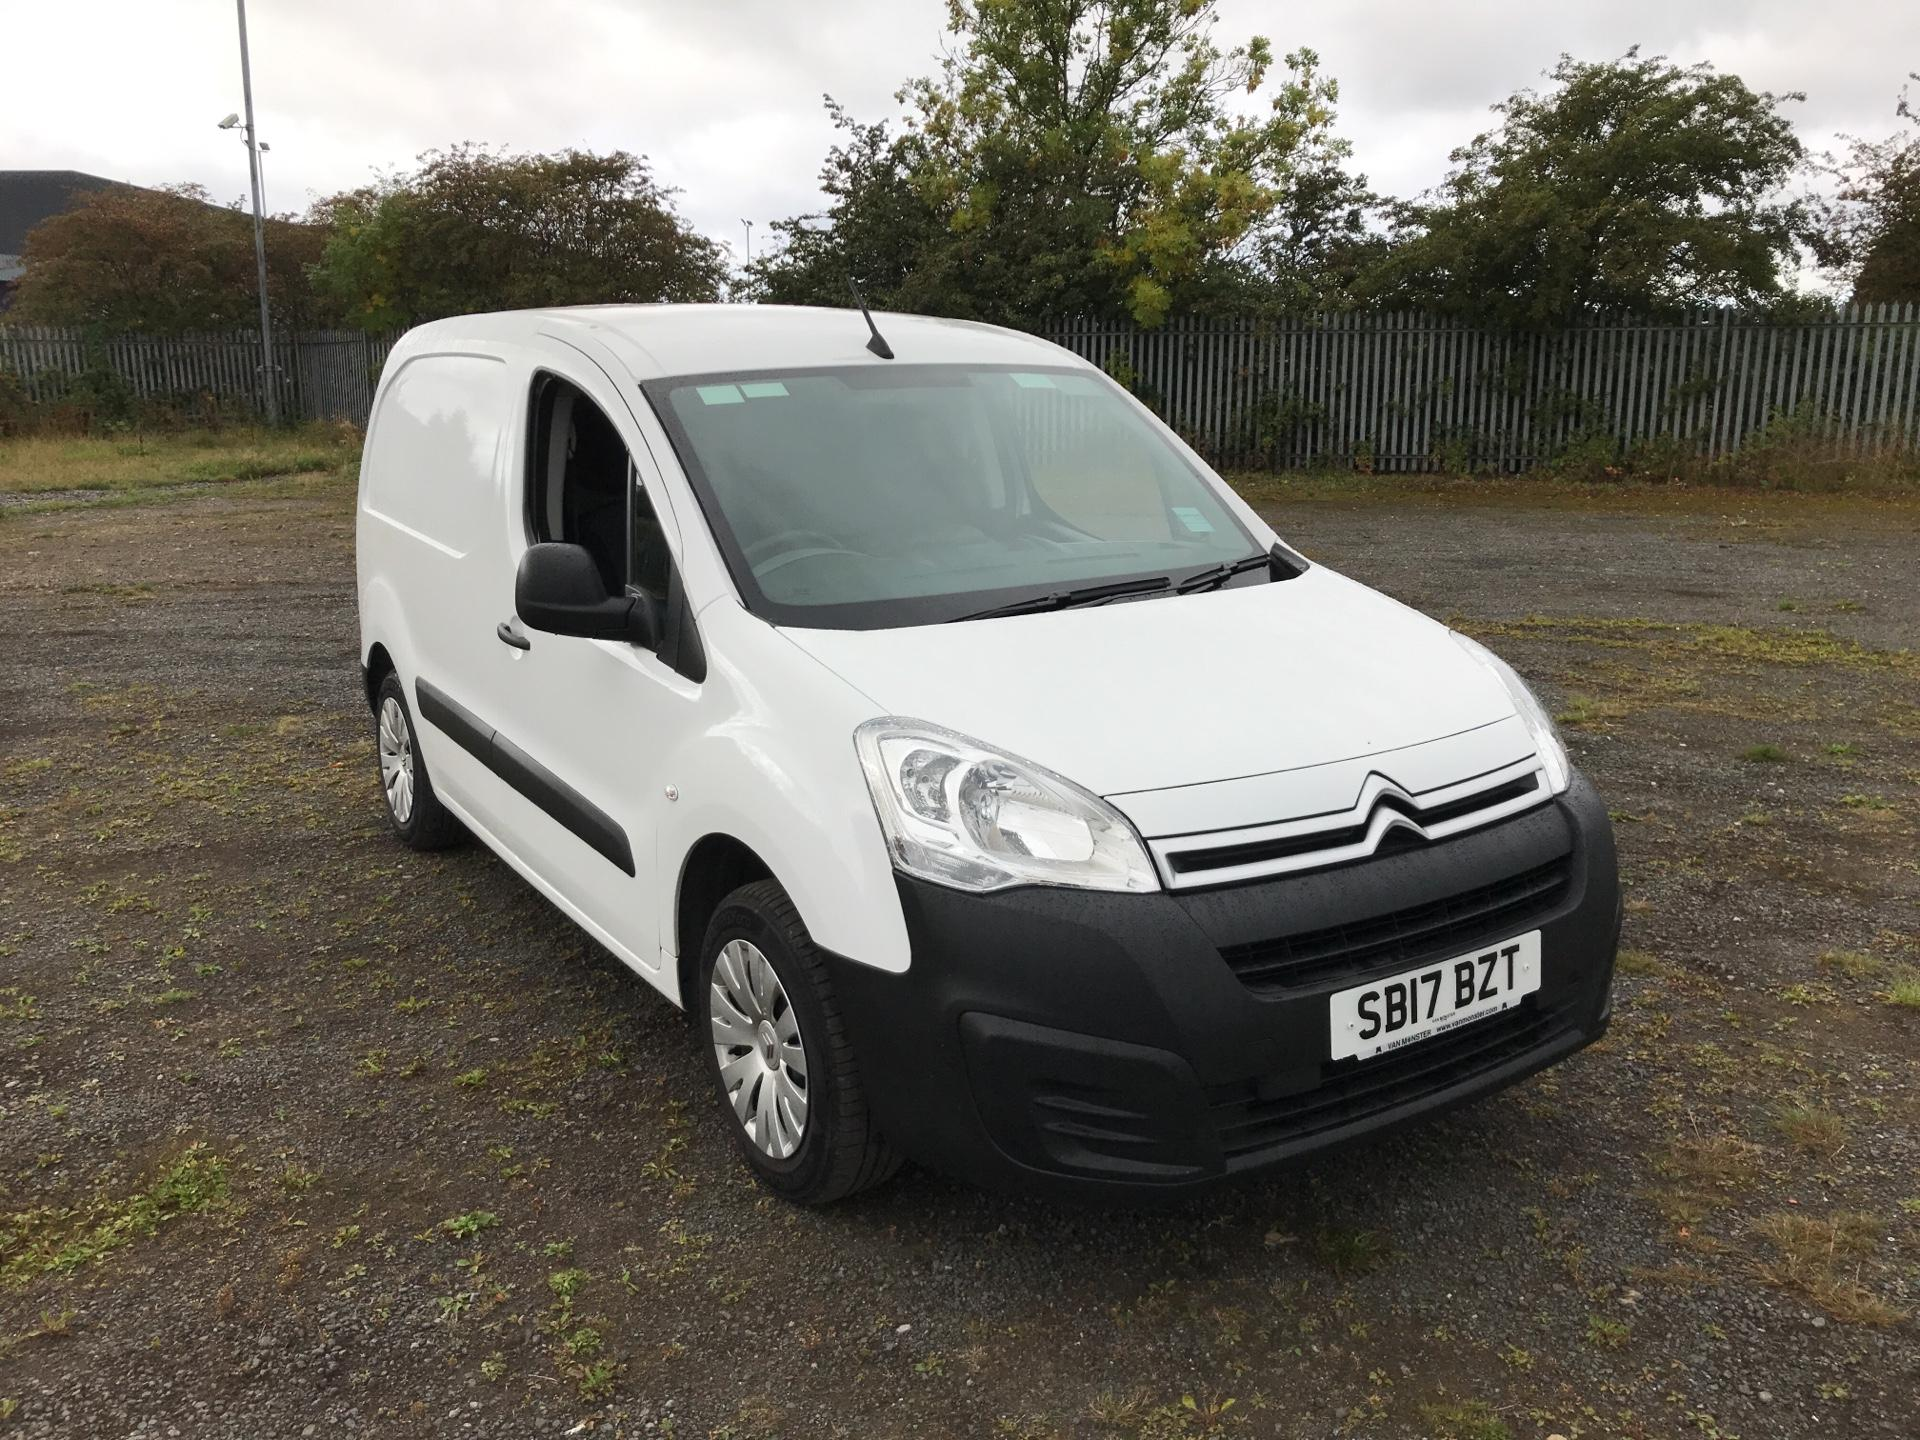 2017 Citroen Berlingo  L1 DIESEL 1.6 BlueHDI 625KG ENTERPRISE 75PS EURO 6 (SB17BZT)